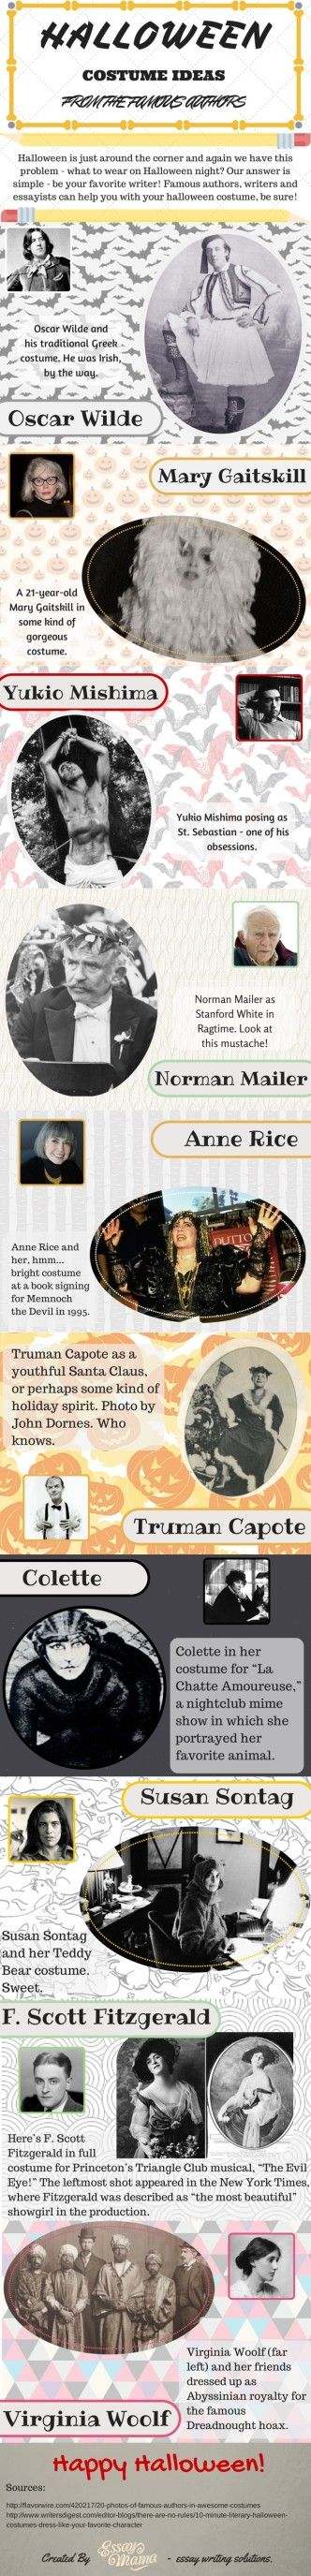 Halloween Costume Ideas From Famous Writers #infographic